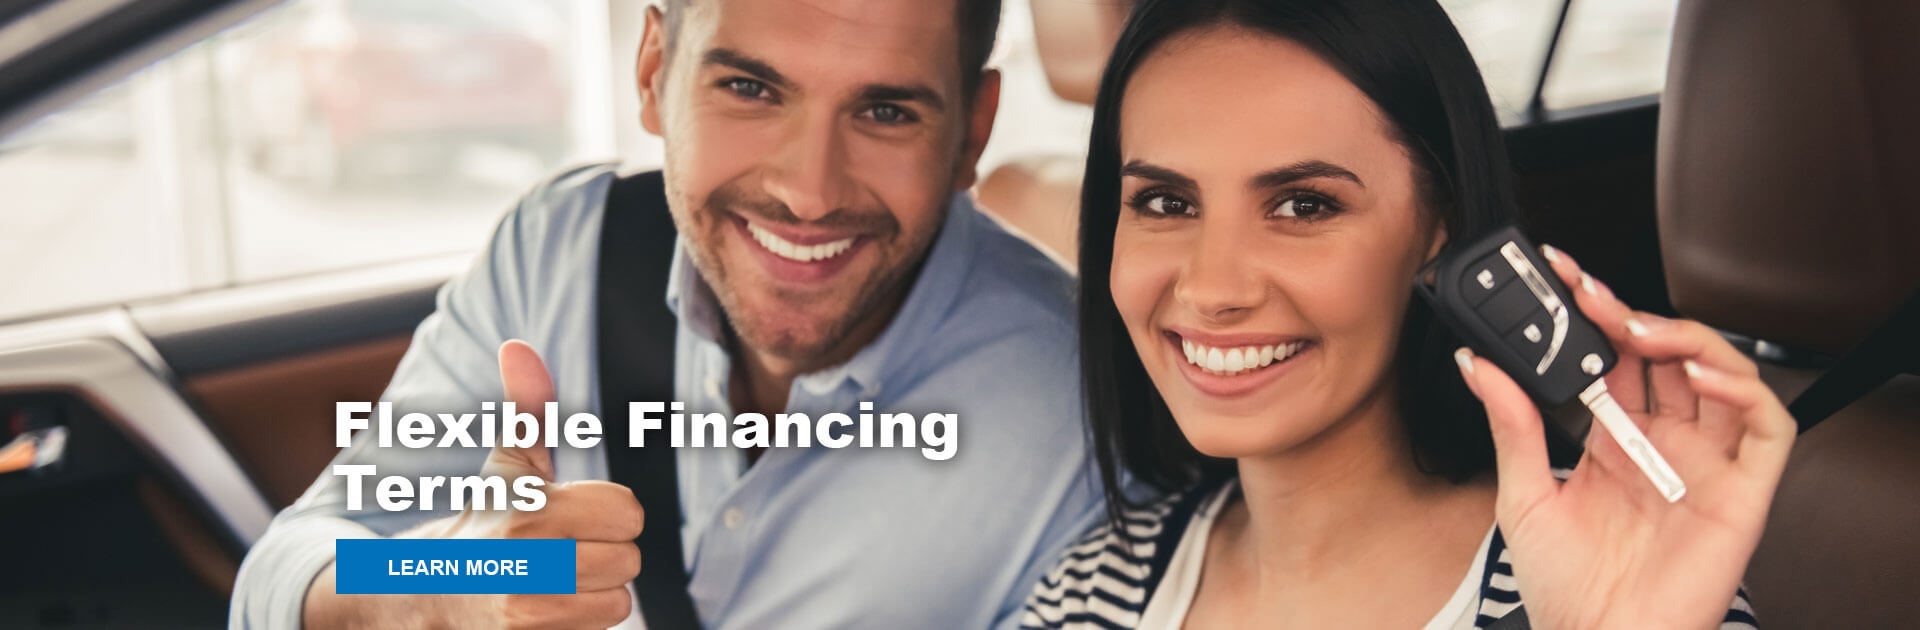 Flexible Financing Terms